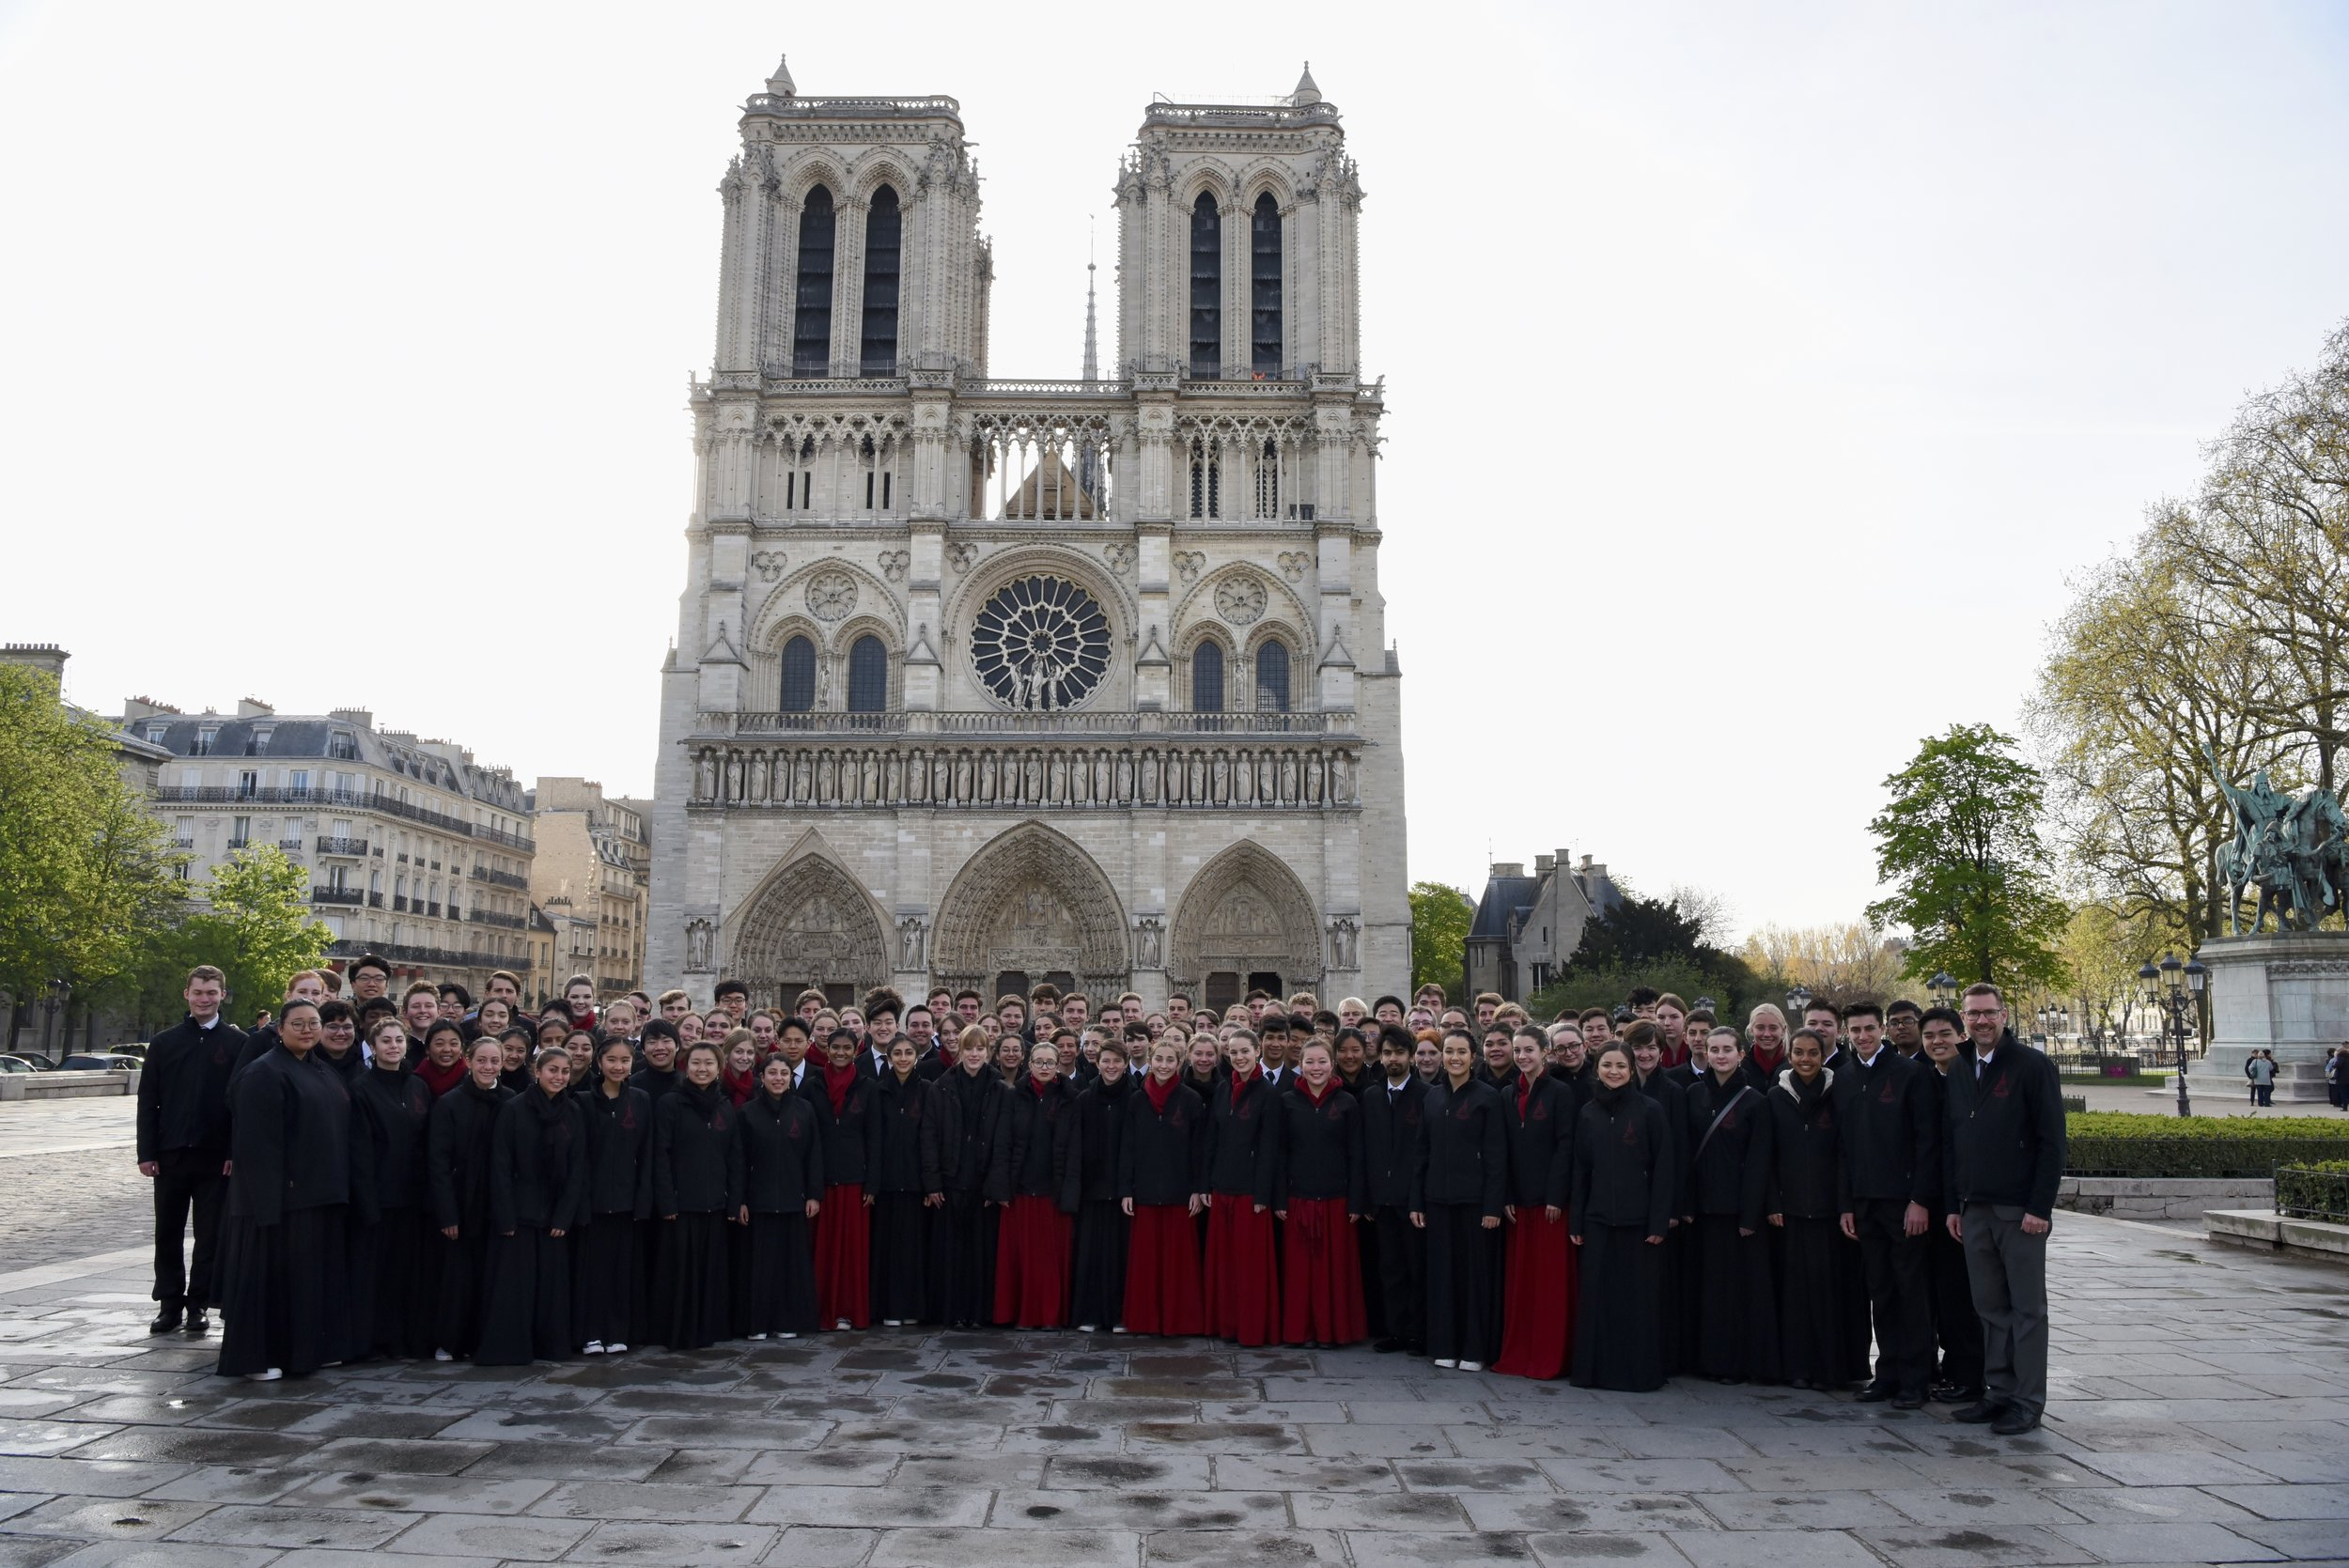 LCHS Choral Artists just before their concert in Notre Dame on April 5, 2019.